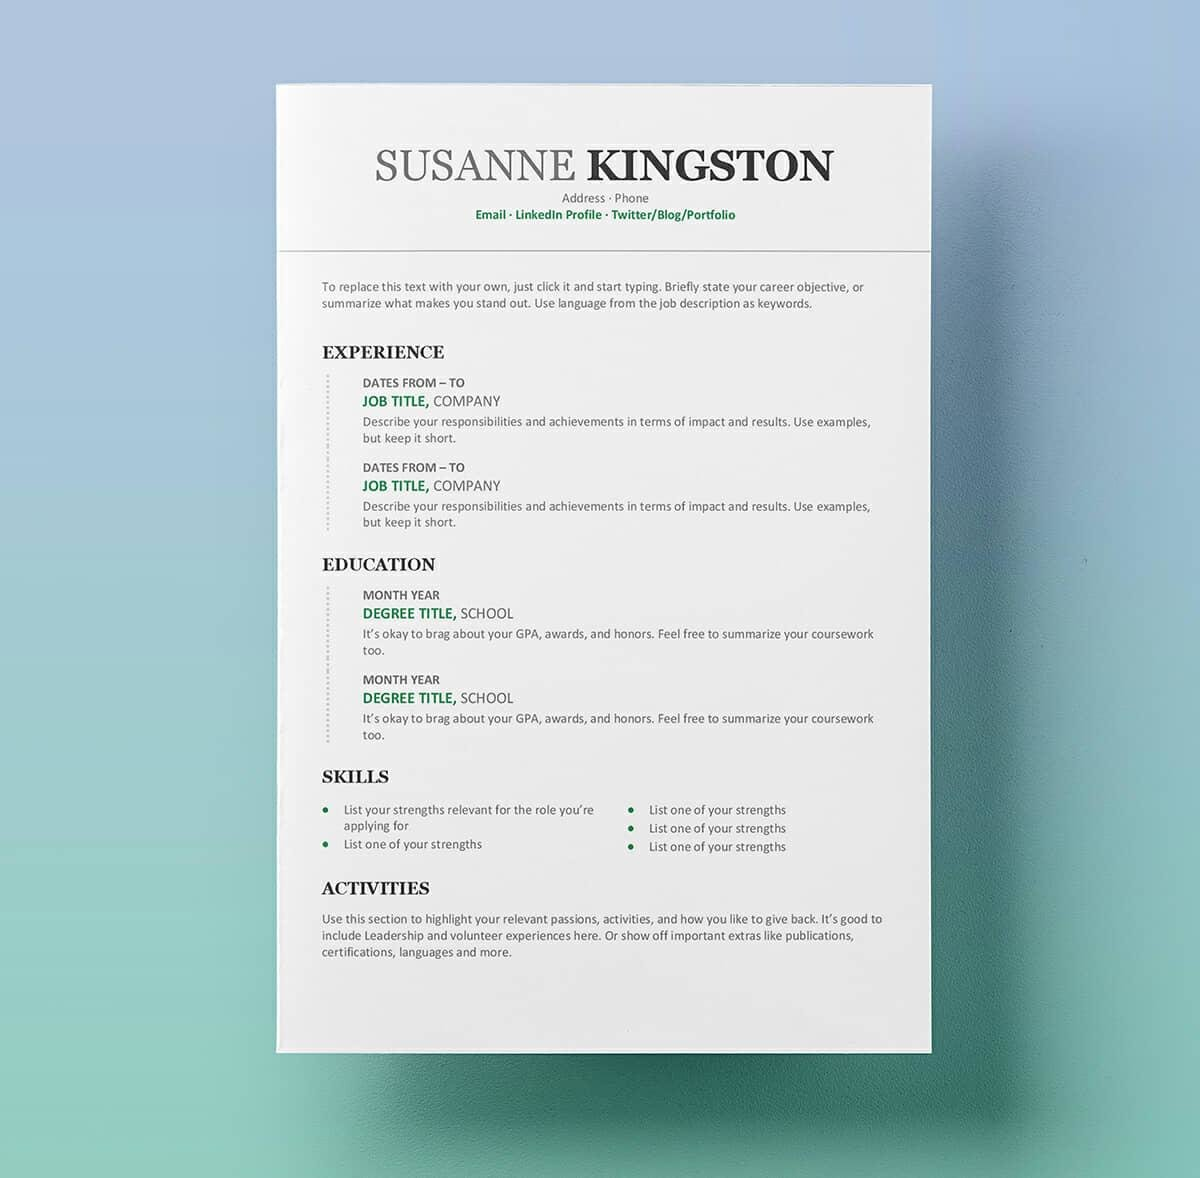 Microsoft Word Resume With Green Details  Free Resumes Templates